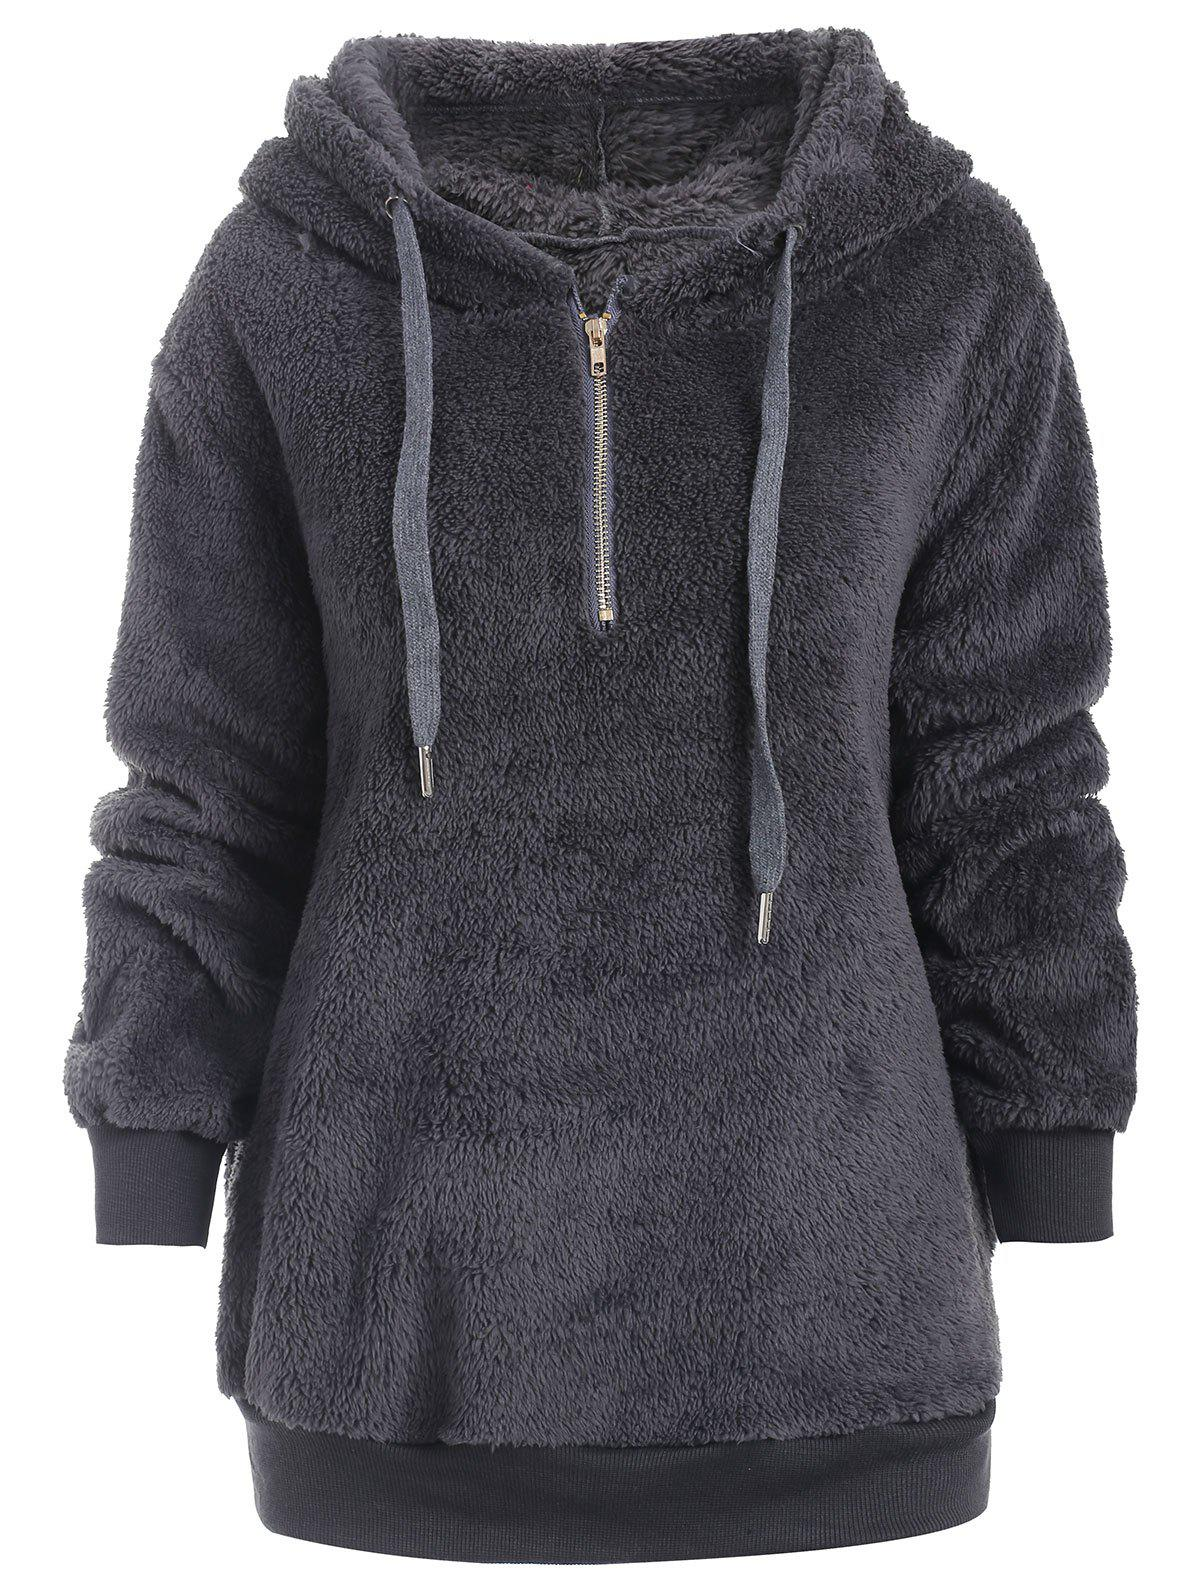 Hot Half Zipper Drawstring Fluffy Hoodie